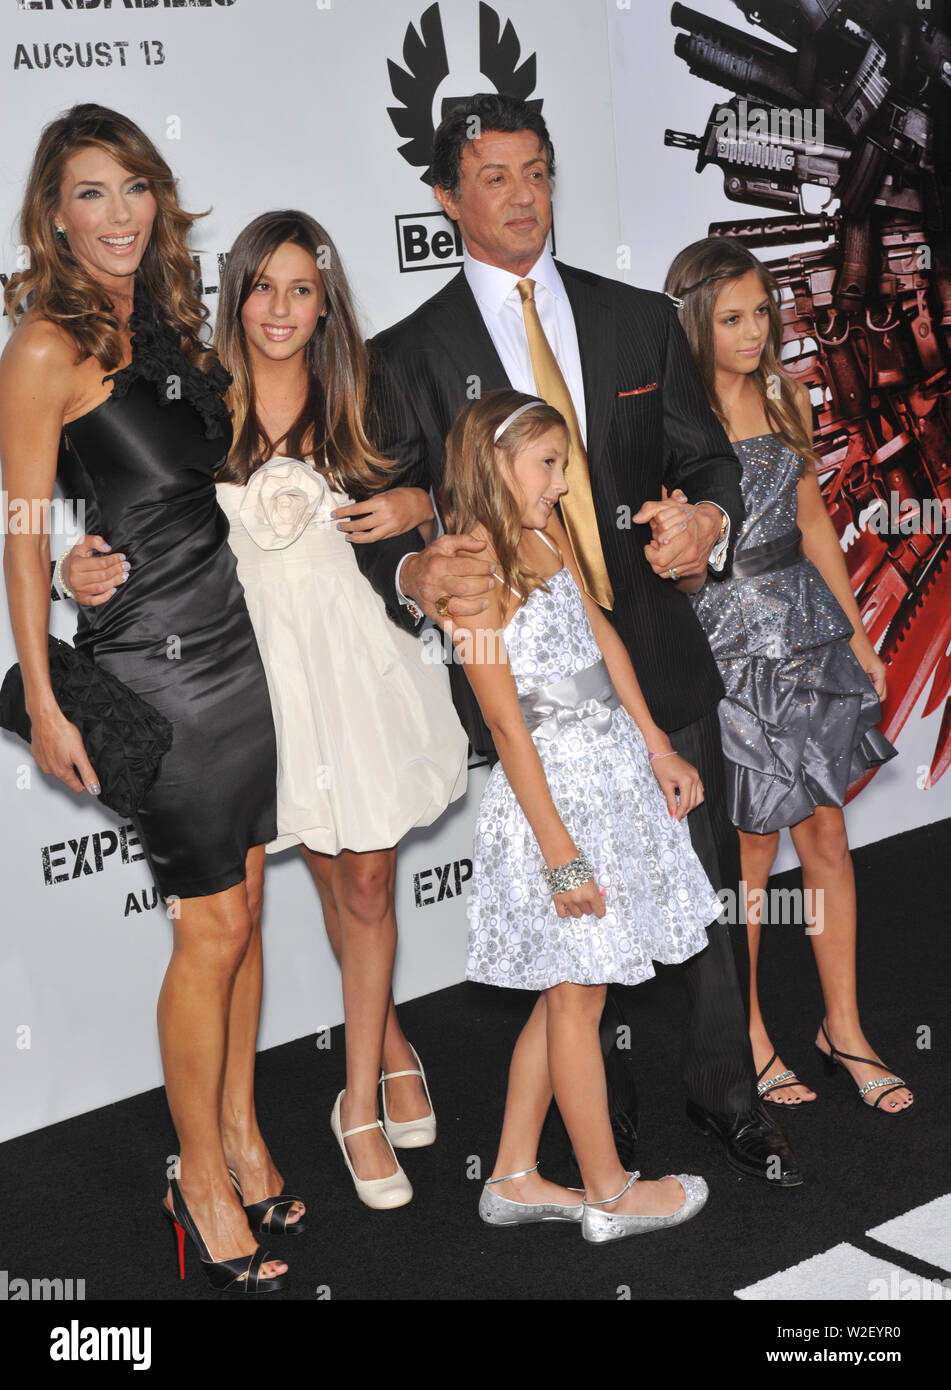 LOS ANGELES, CA. August 03, 2010: Sylvester Stallone & wife Jennifer Flavin & daughters at the world premiere of his new movie 'The Expendables' at Grauman's Chinese Theatre, Hollywood. © 2010 Paul Smith / Featureflash - Stock Image